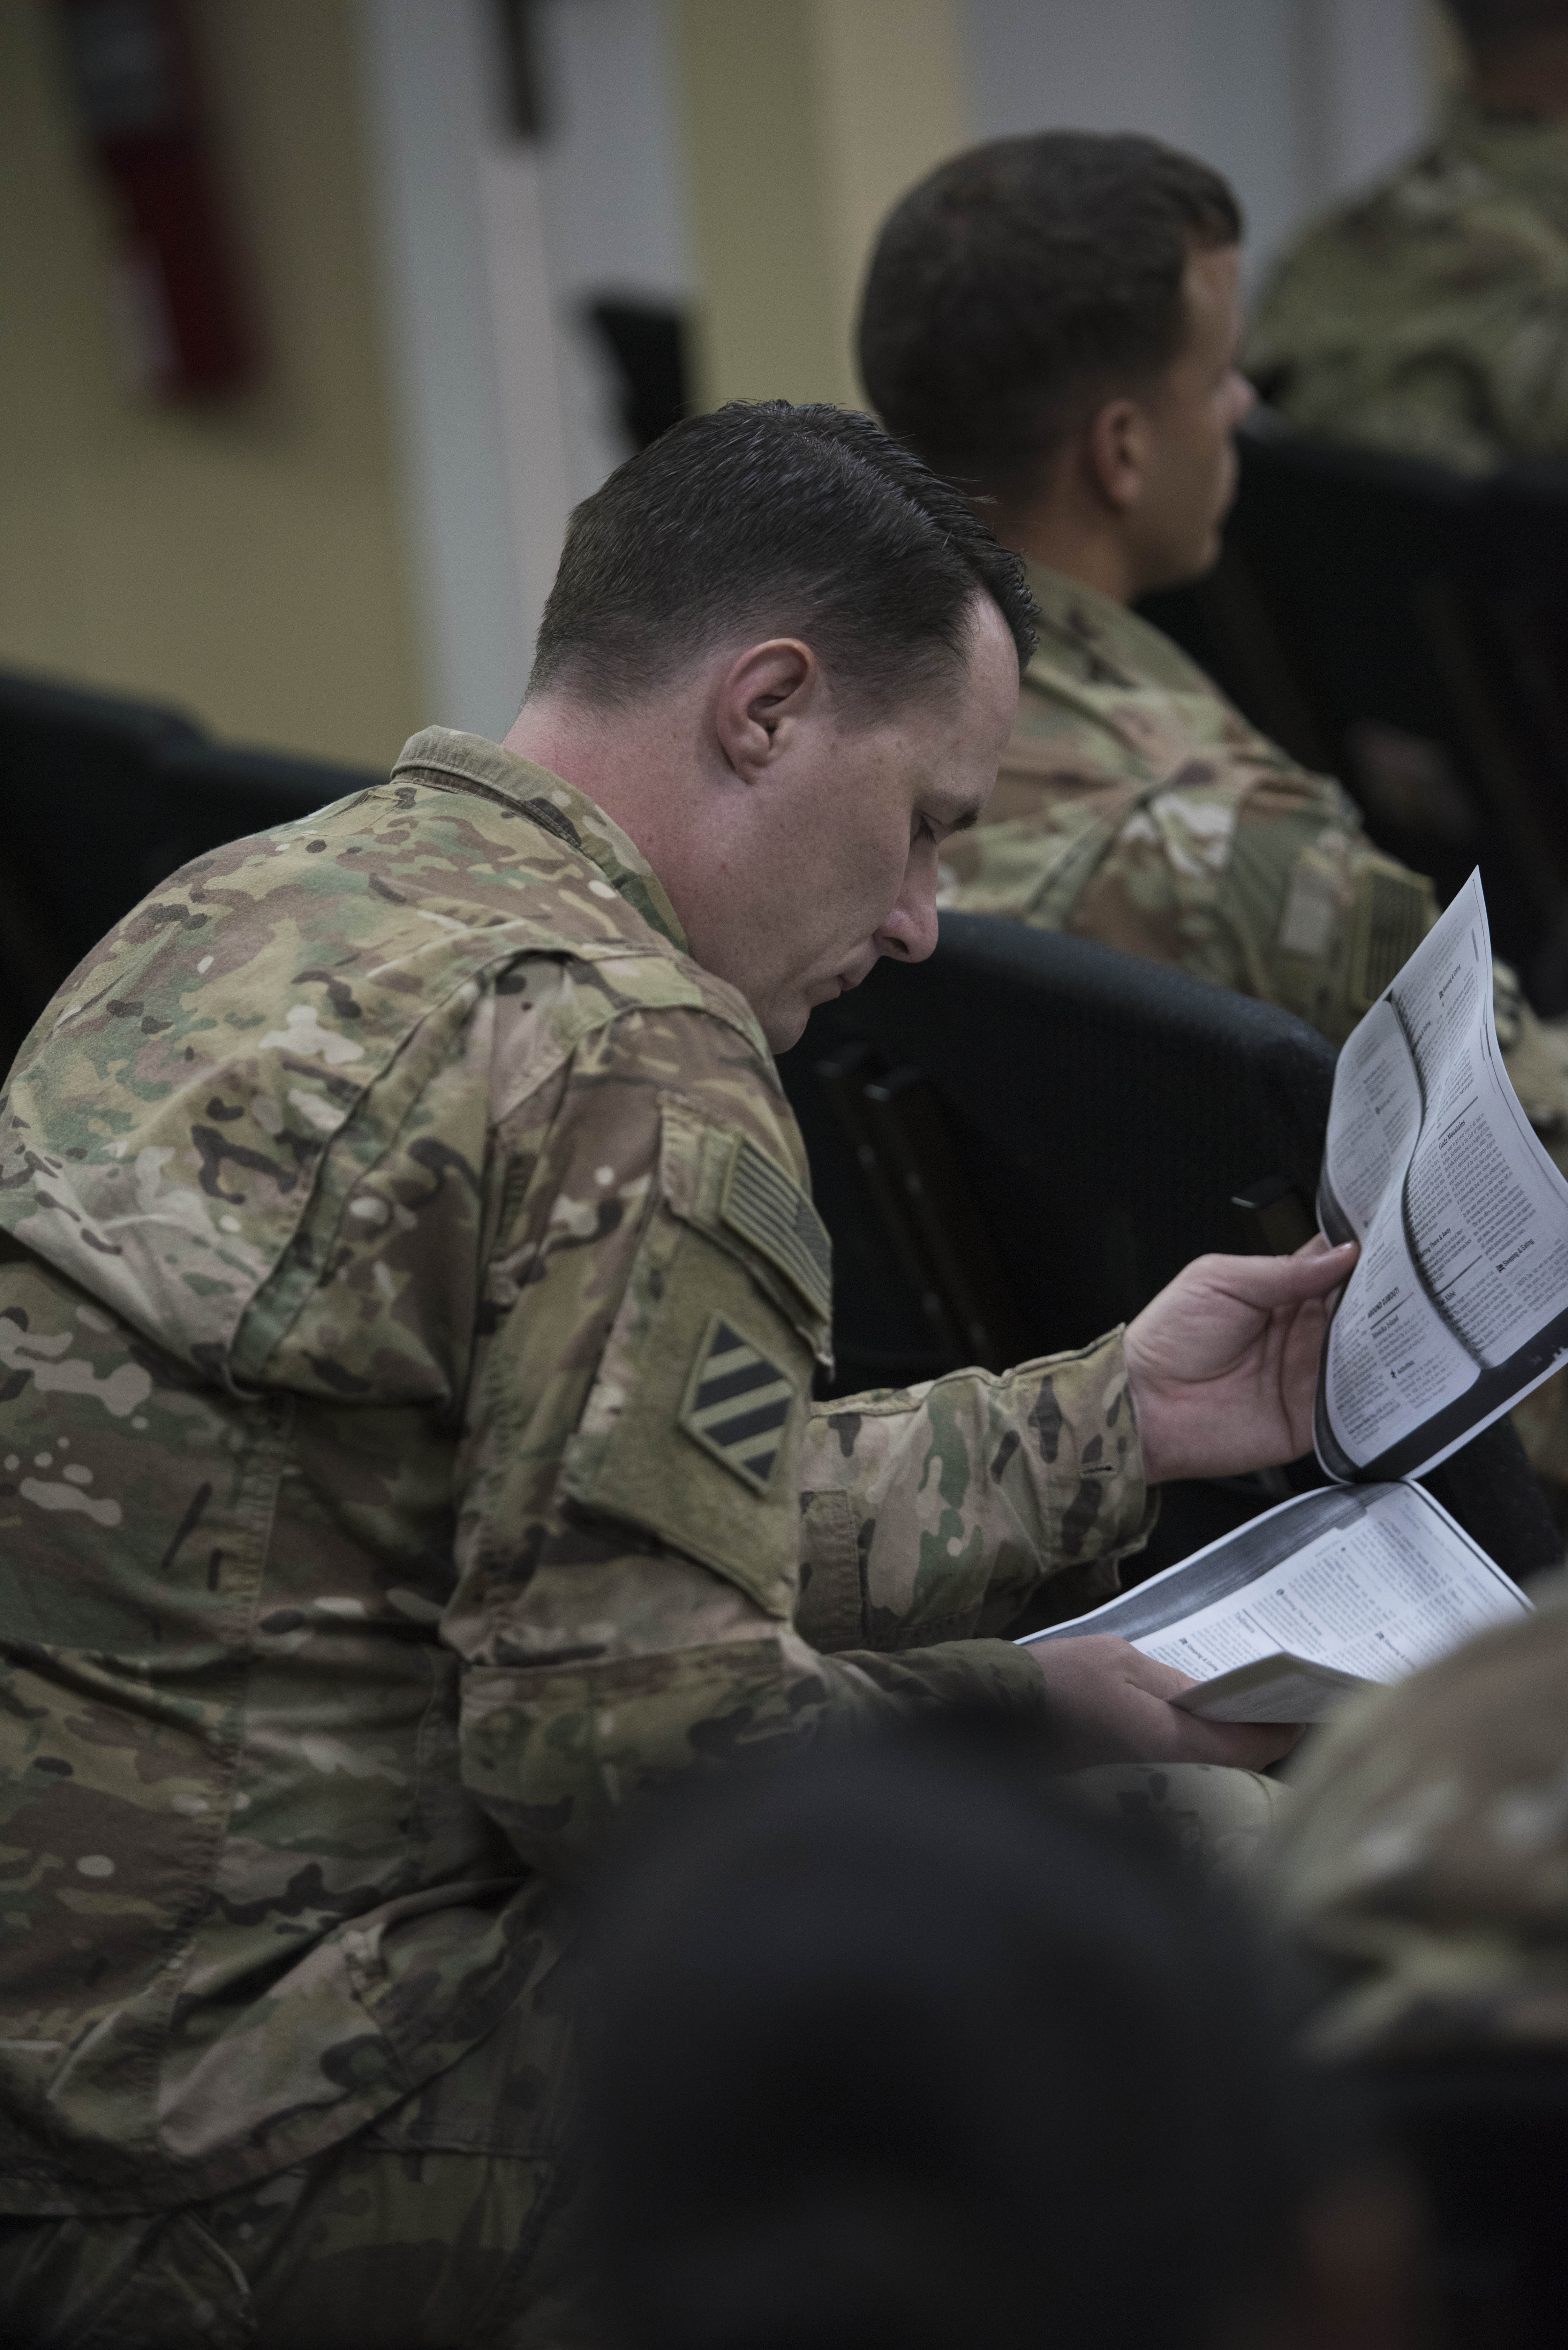 U.S. Army Maj. Baruch Zobrist, Deputy Force Surgeon for the Combined Joint Task Force – Horn of Africa Surgeon Cell, reviews information given during a Military Tropical Medicine Course hosted by the CJTF-HOA Surgeon Cell and the Navy Medicine Professional Development Center at Camp Lemonnier, Djibouti, Nov. 14, 2017. Medical professionals from across the U.S. military services, foreign militaries and local community joined together during the three-day course to discuss challenges posed to medical personnel providing care for troops operating within the Horn of Africa and the East African region. (U.S. Air National Guard photo by Staff Sgt. Allyson L. Manners)